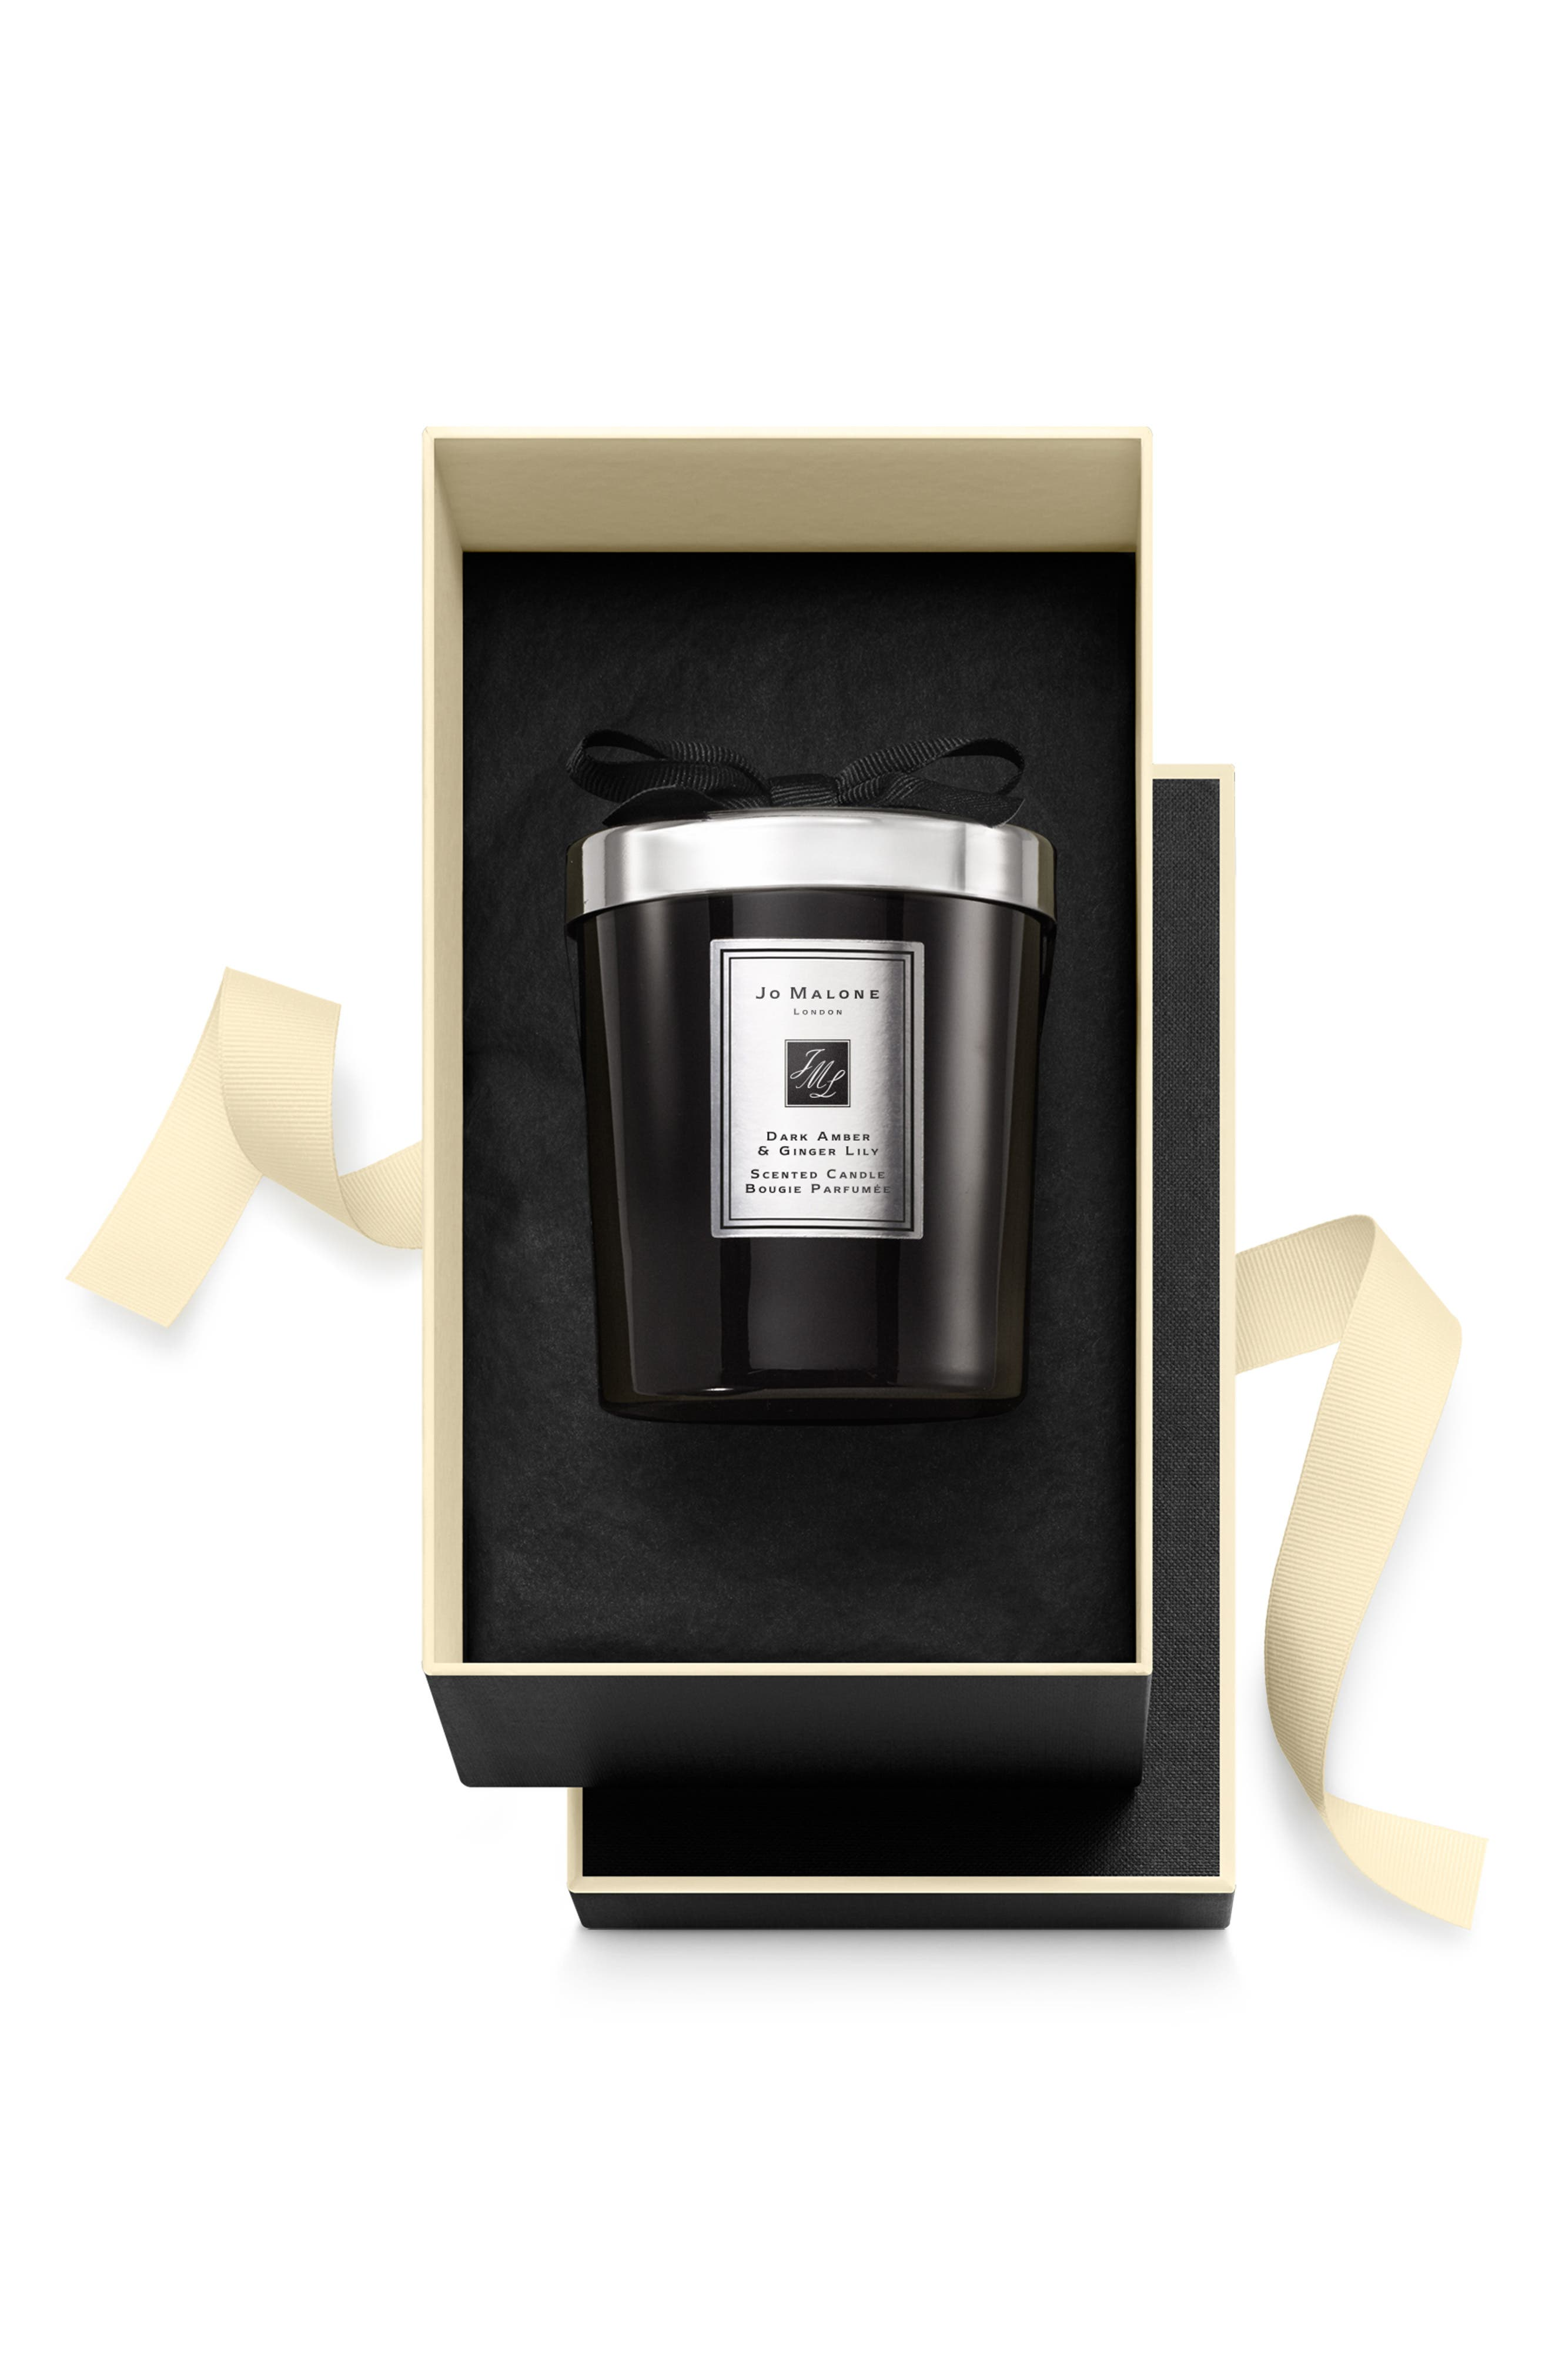 Dark Amber & Ginger Lily Candle, Main, color, NO COLOR